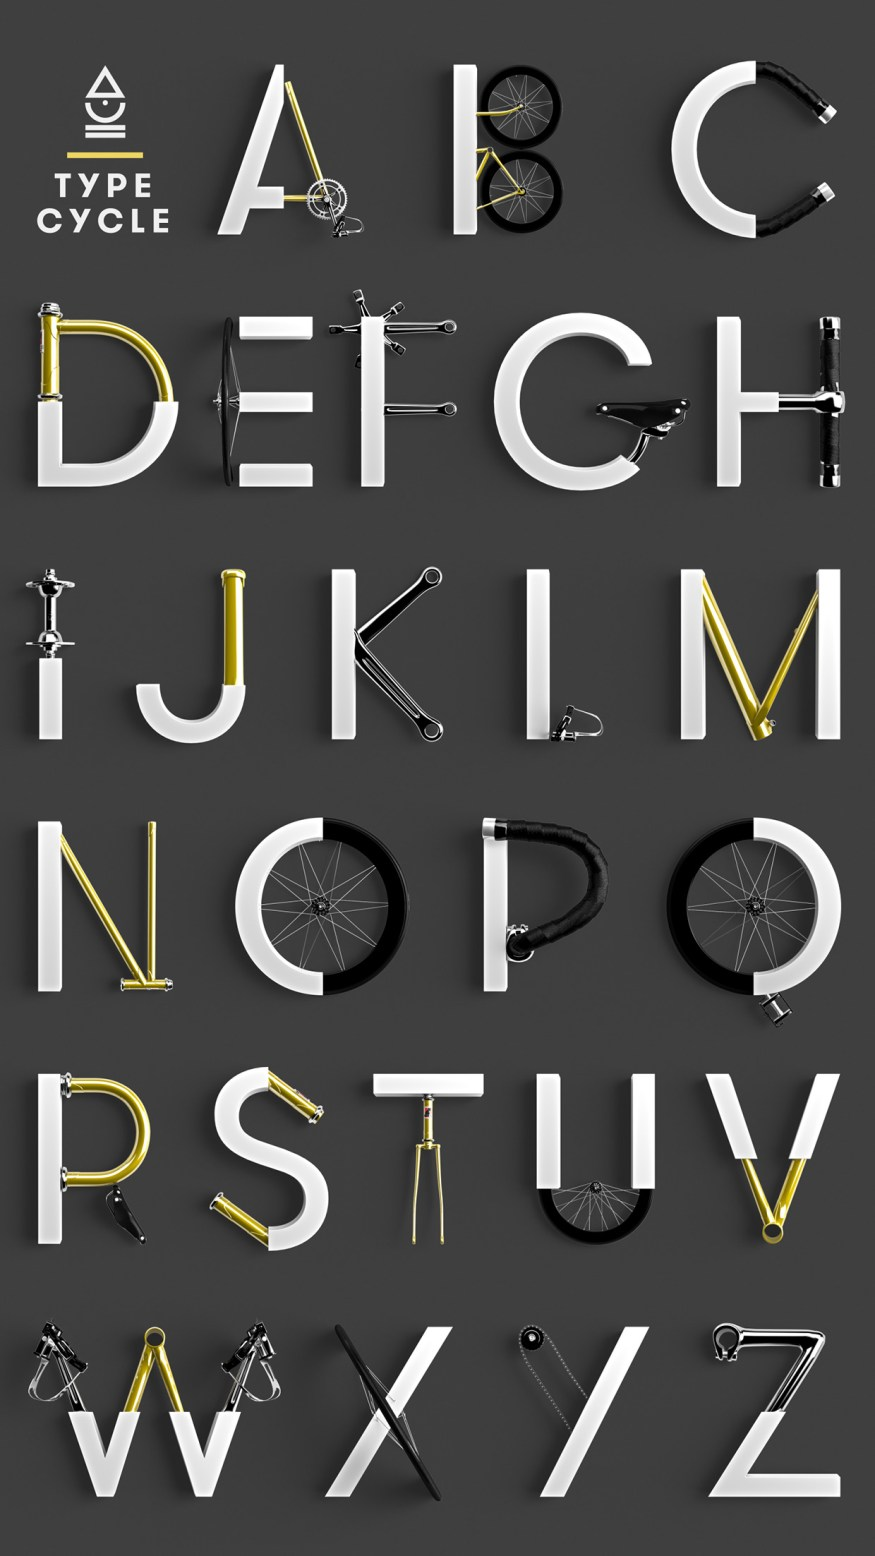 Cycle-Typeface-marcelpiekarski-poster-cotw